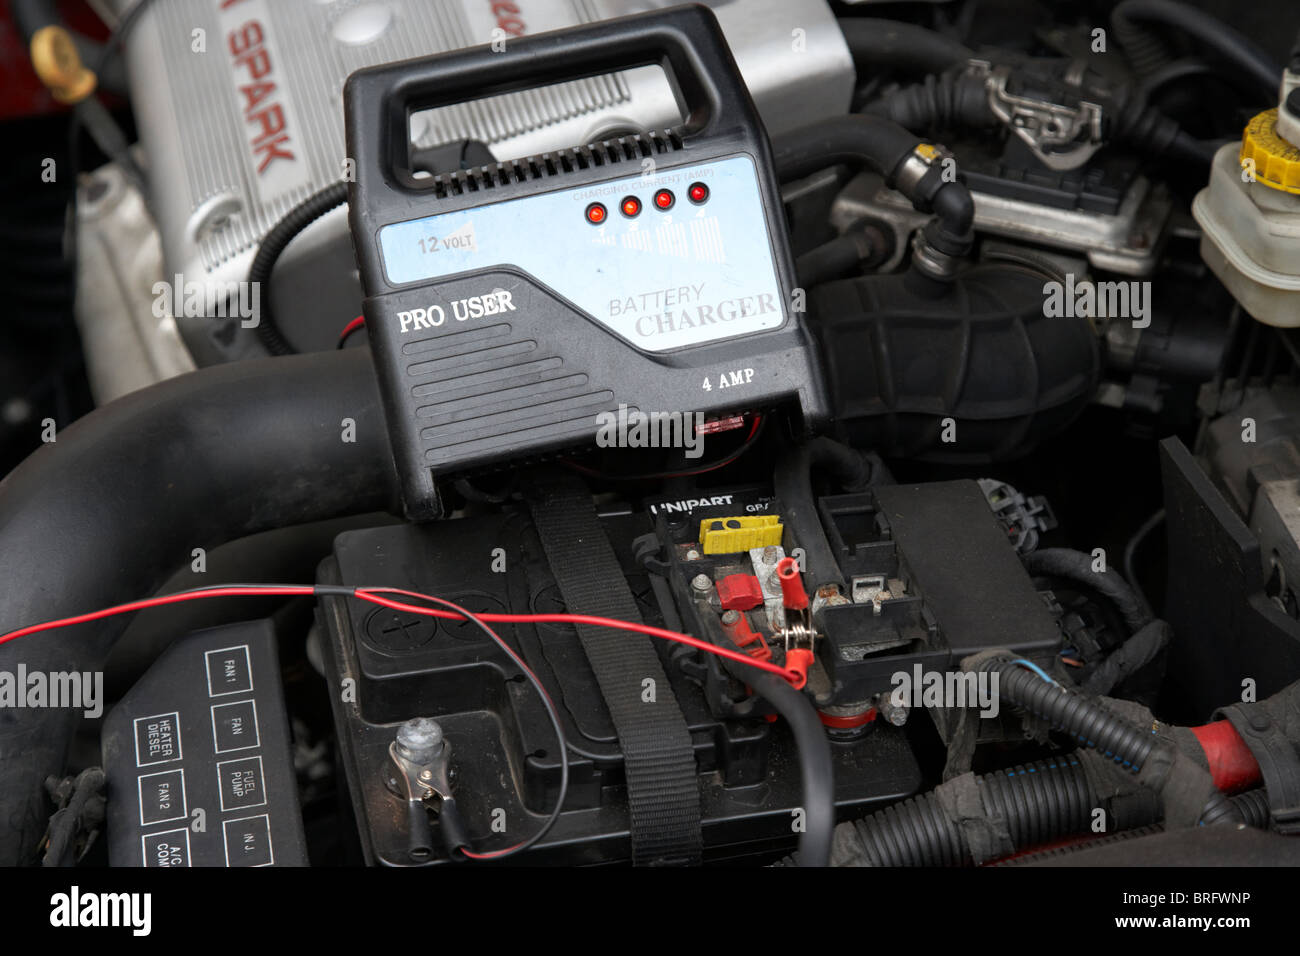 mains car battery charger charging flat car battery in cold weather - Stock Image